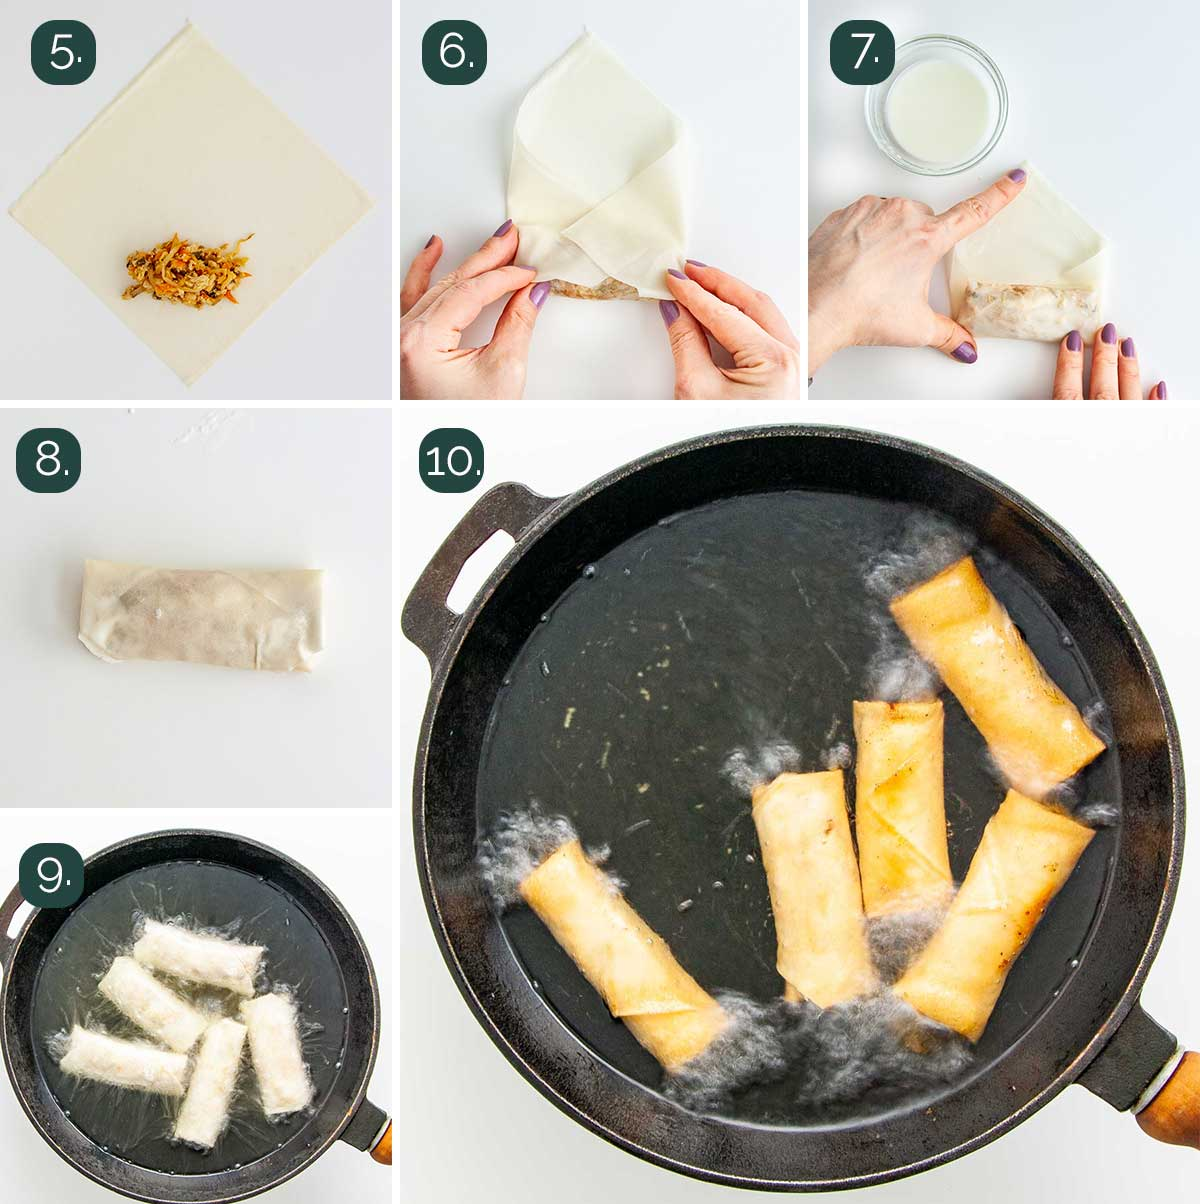 process shots showing how to fold spring rolls and fry them.